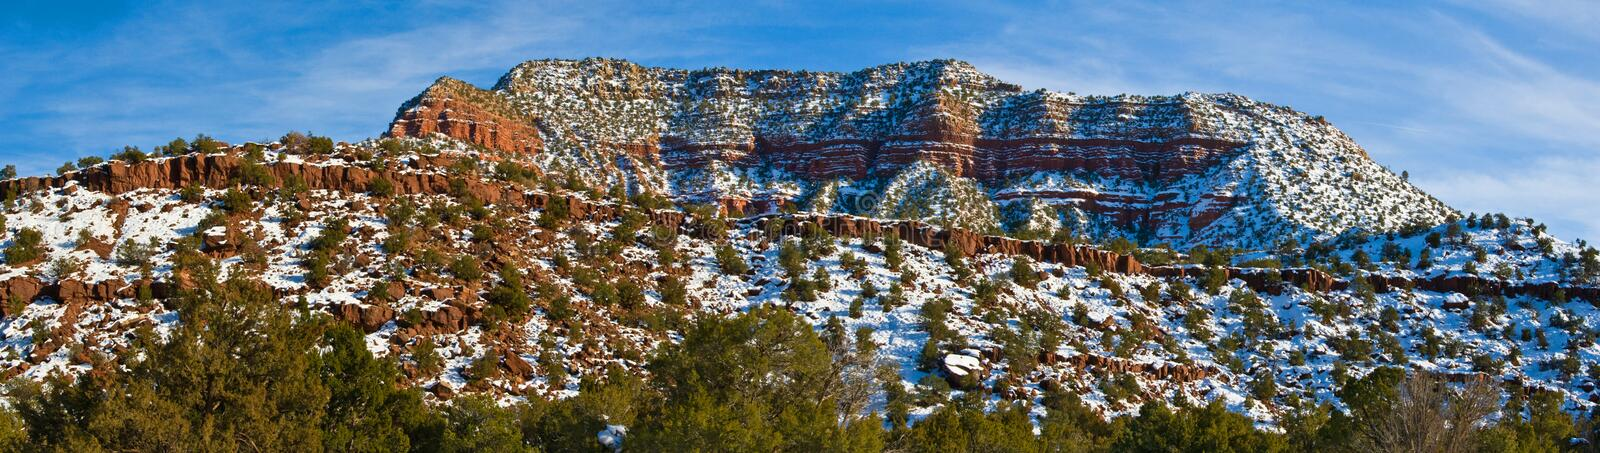 New Mexico snowy landscape. USA royalty free stock photography